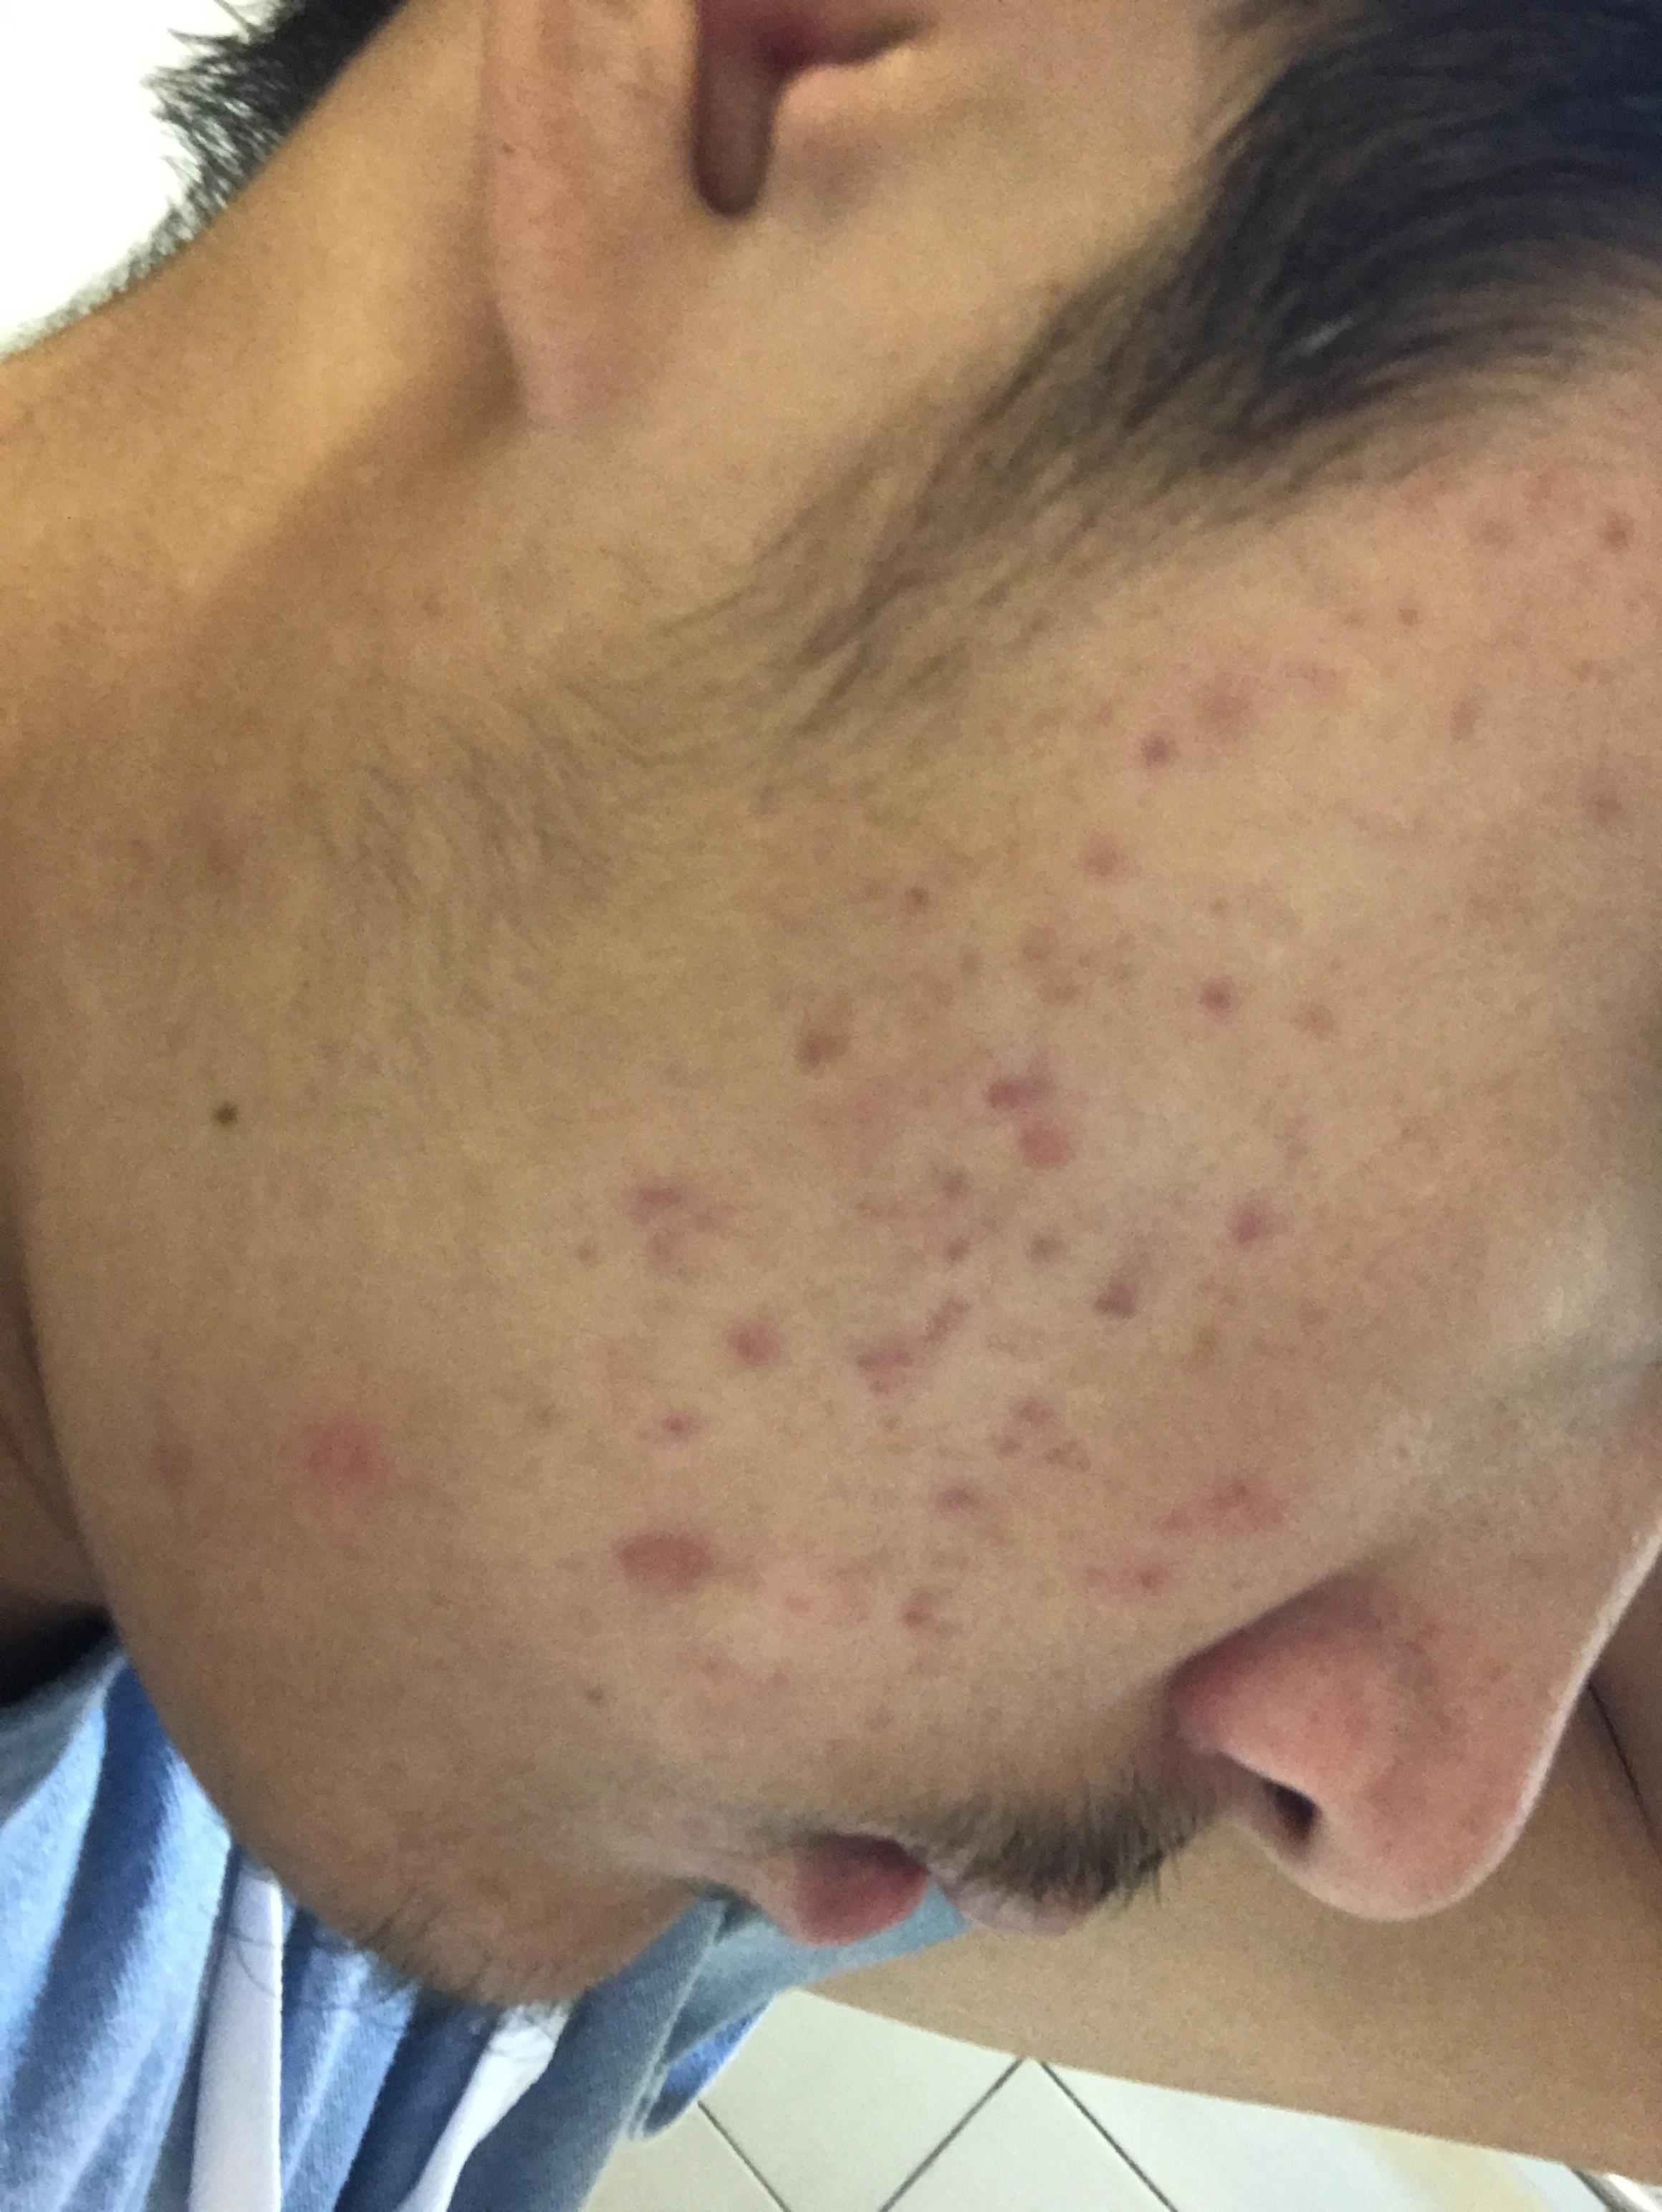 how to get rid of post acne hyperpigmentation fast